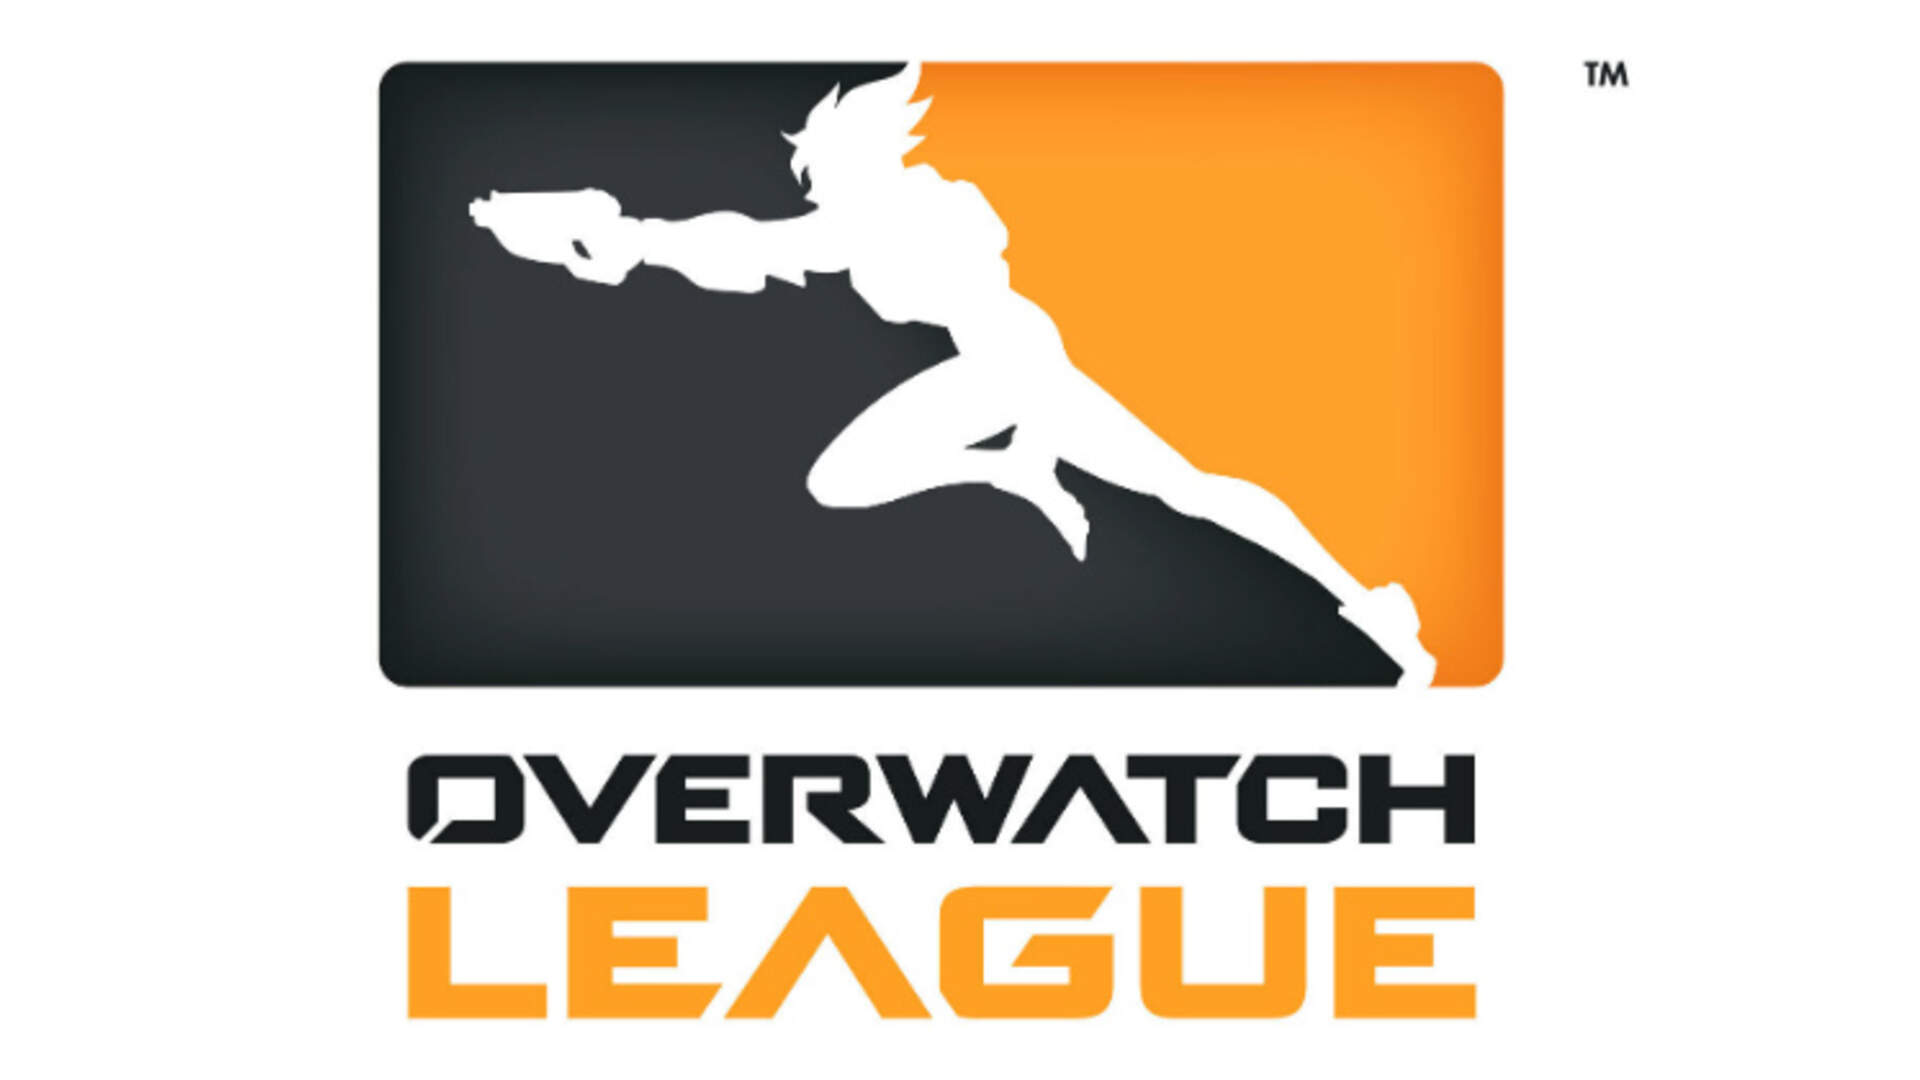 Do You Want to be a Pro Overwatch Player? Here's How Much You Could Make